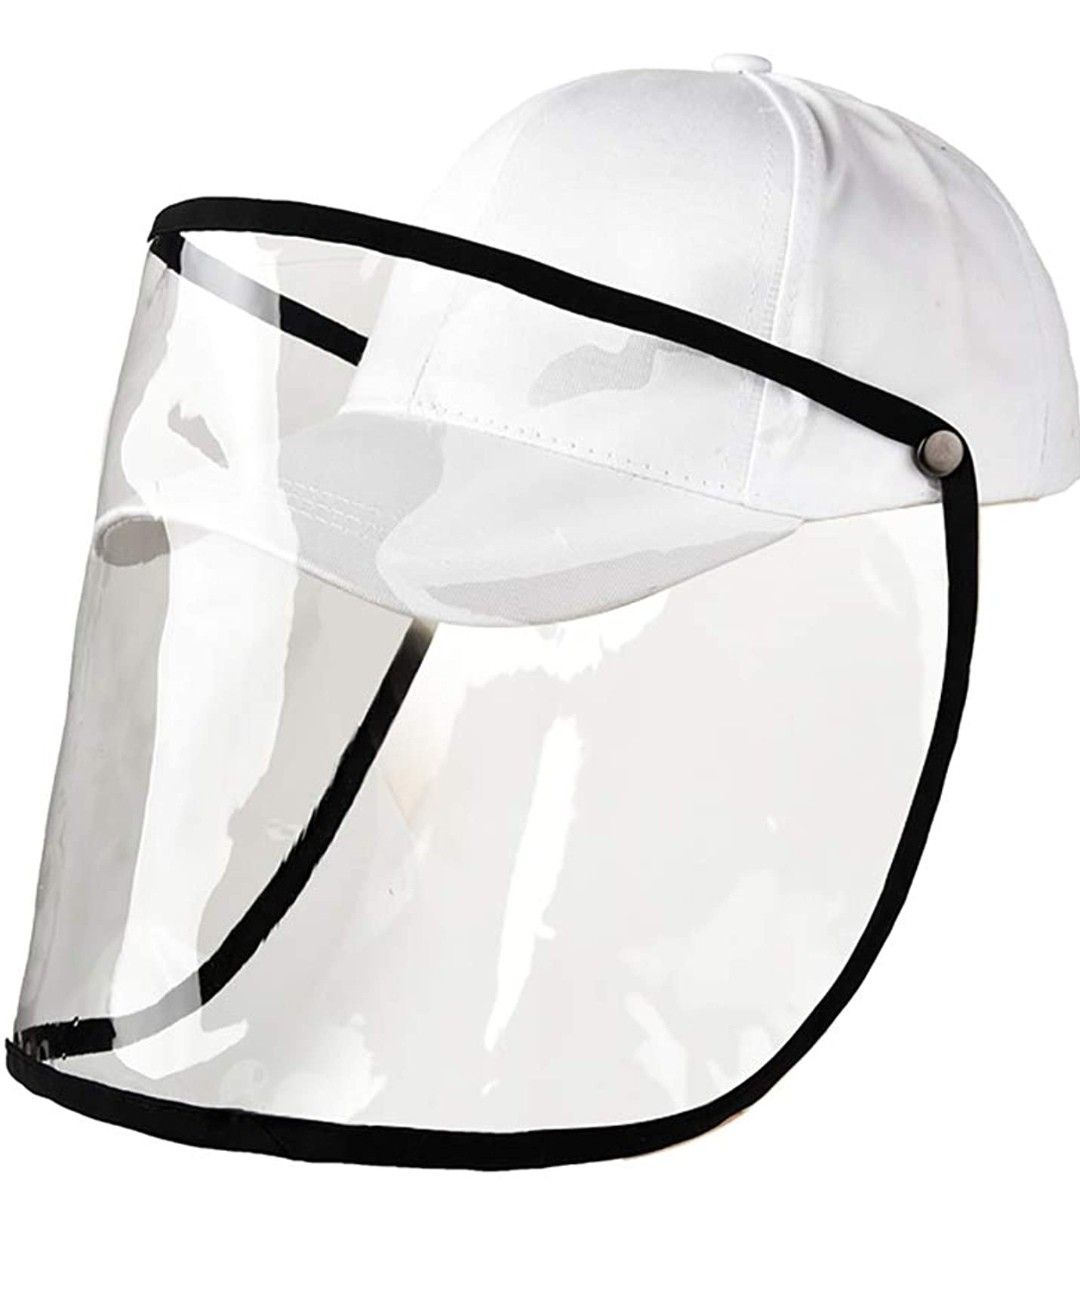 Face Shield Mouth Mask Baseball Cap 2 In 1 For Germ Protection For Air Pollution In 2020 Face Shield Masks Mask Face Shield